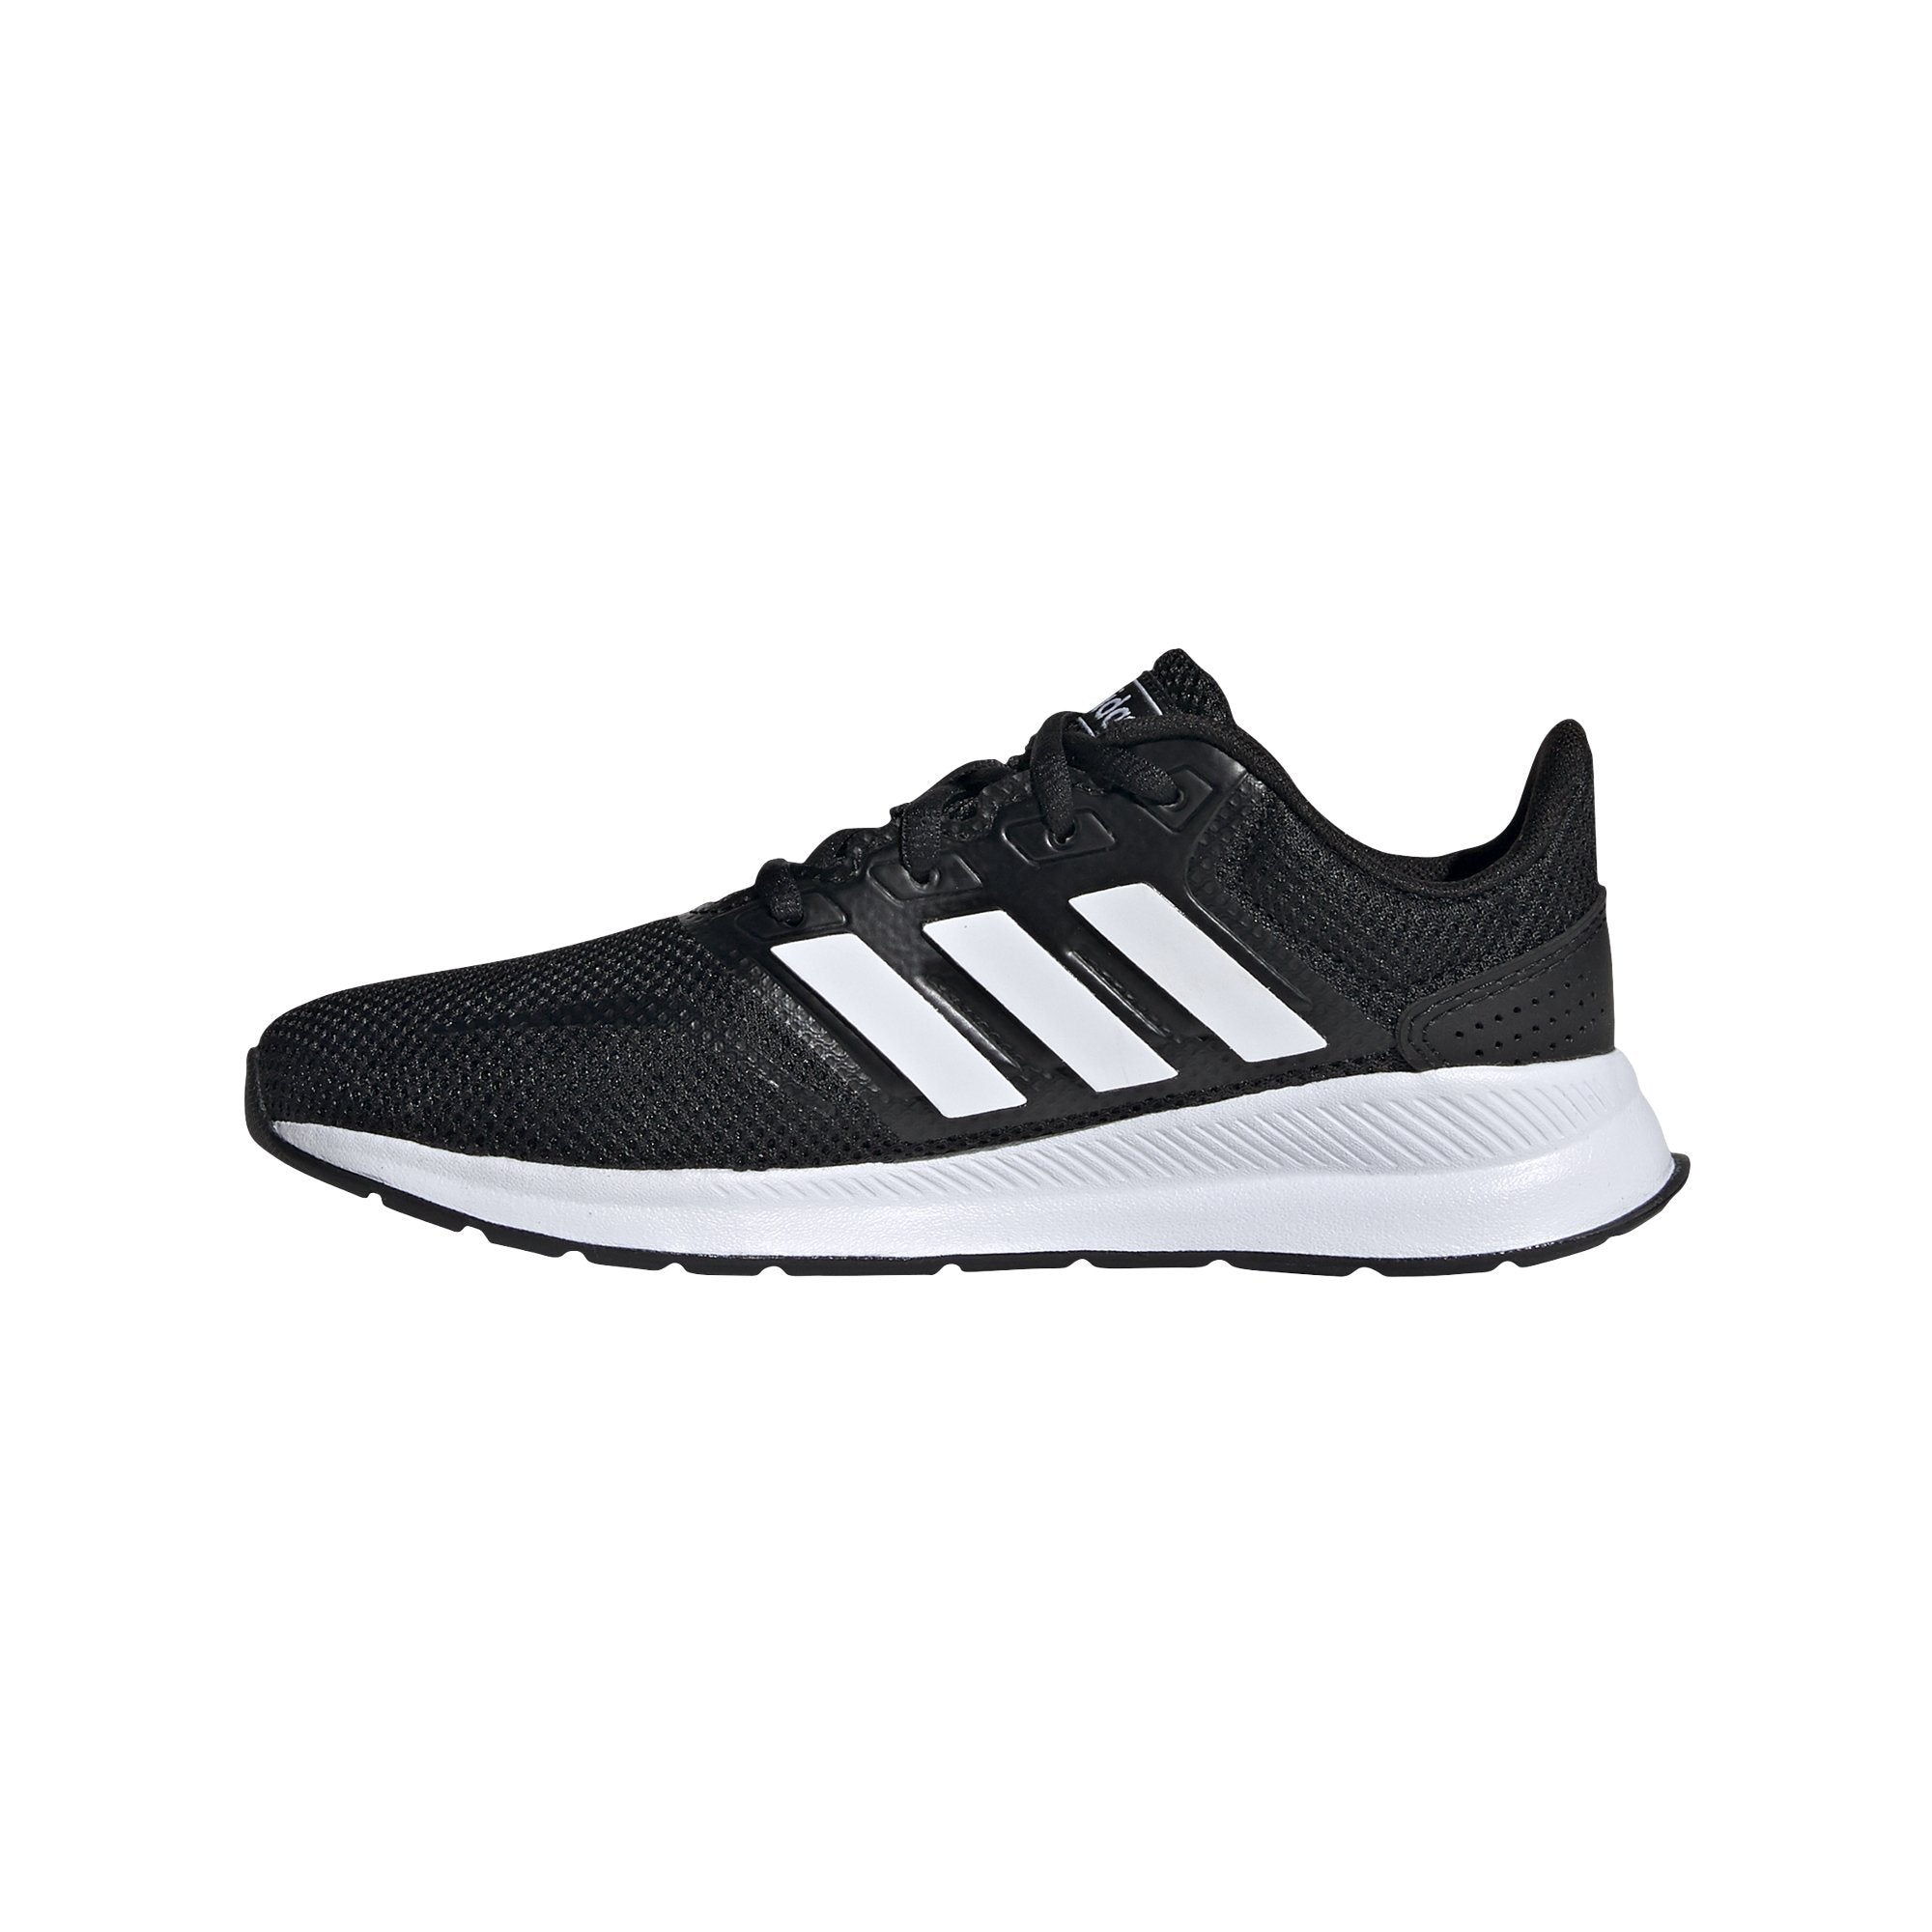 Adidas Kids Runfalcon Shoes - Core Black/Ftwr White/Core Black SP-Footwear-Kids Adidas